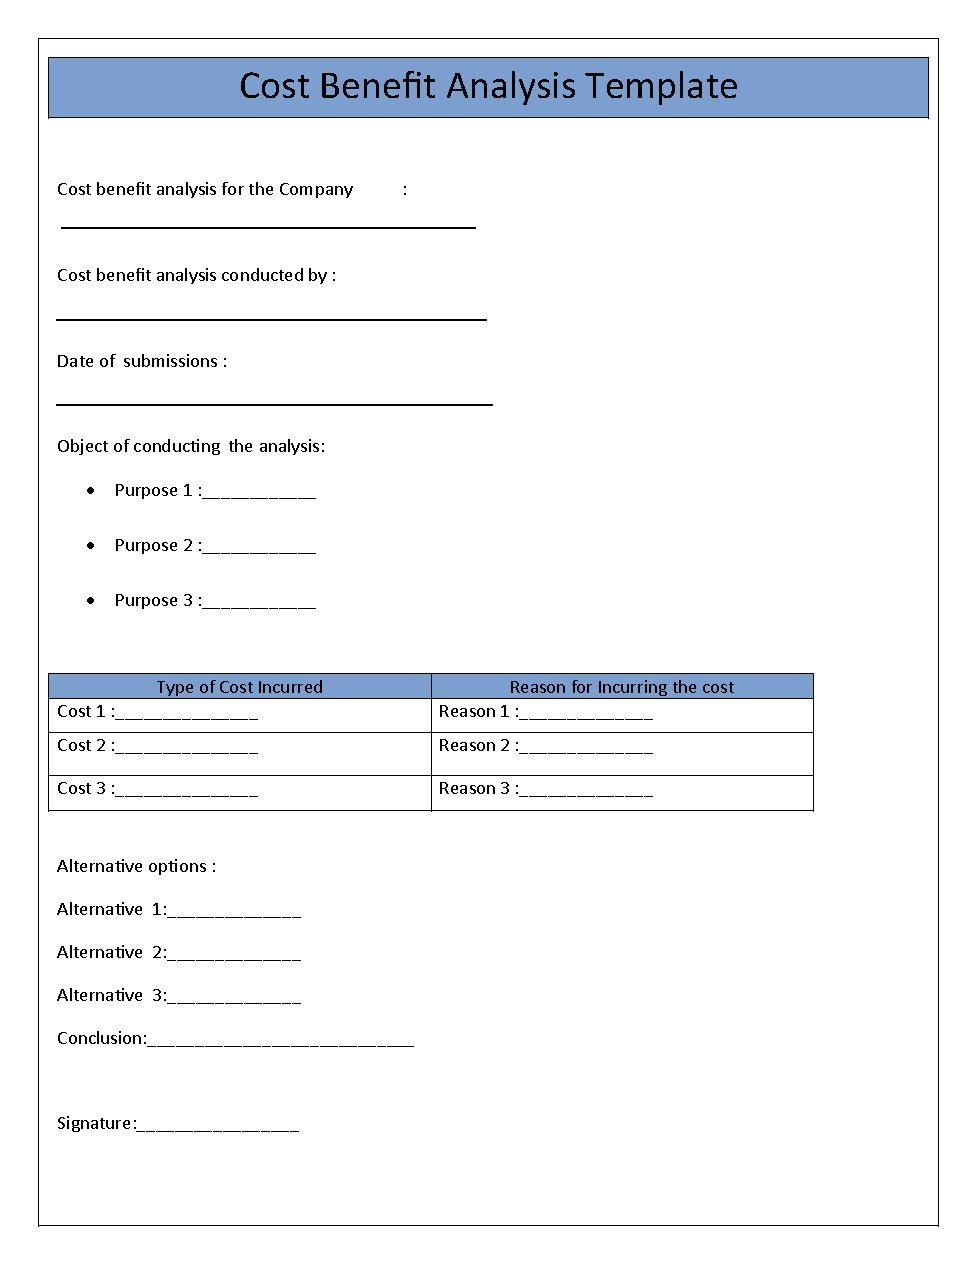 cost-benefit-analysis-template-04